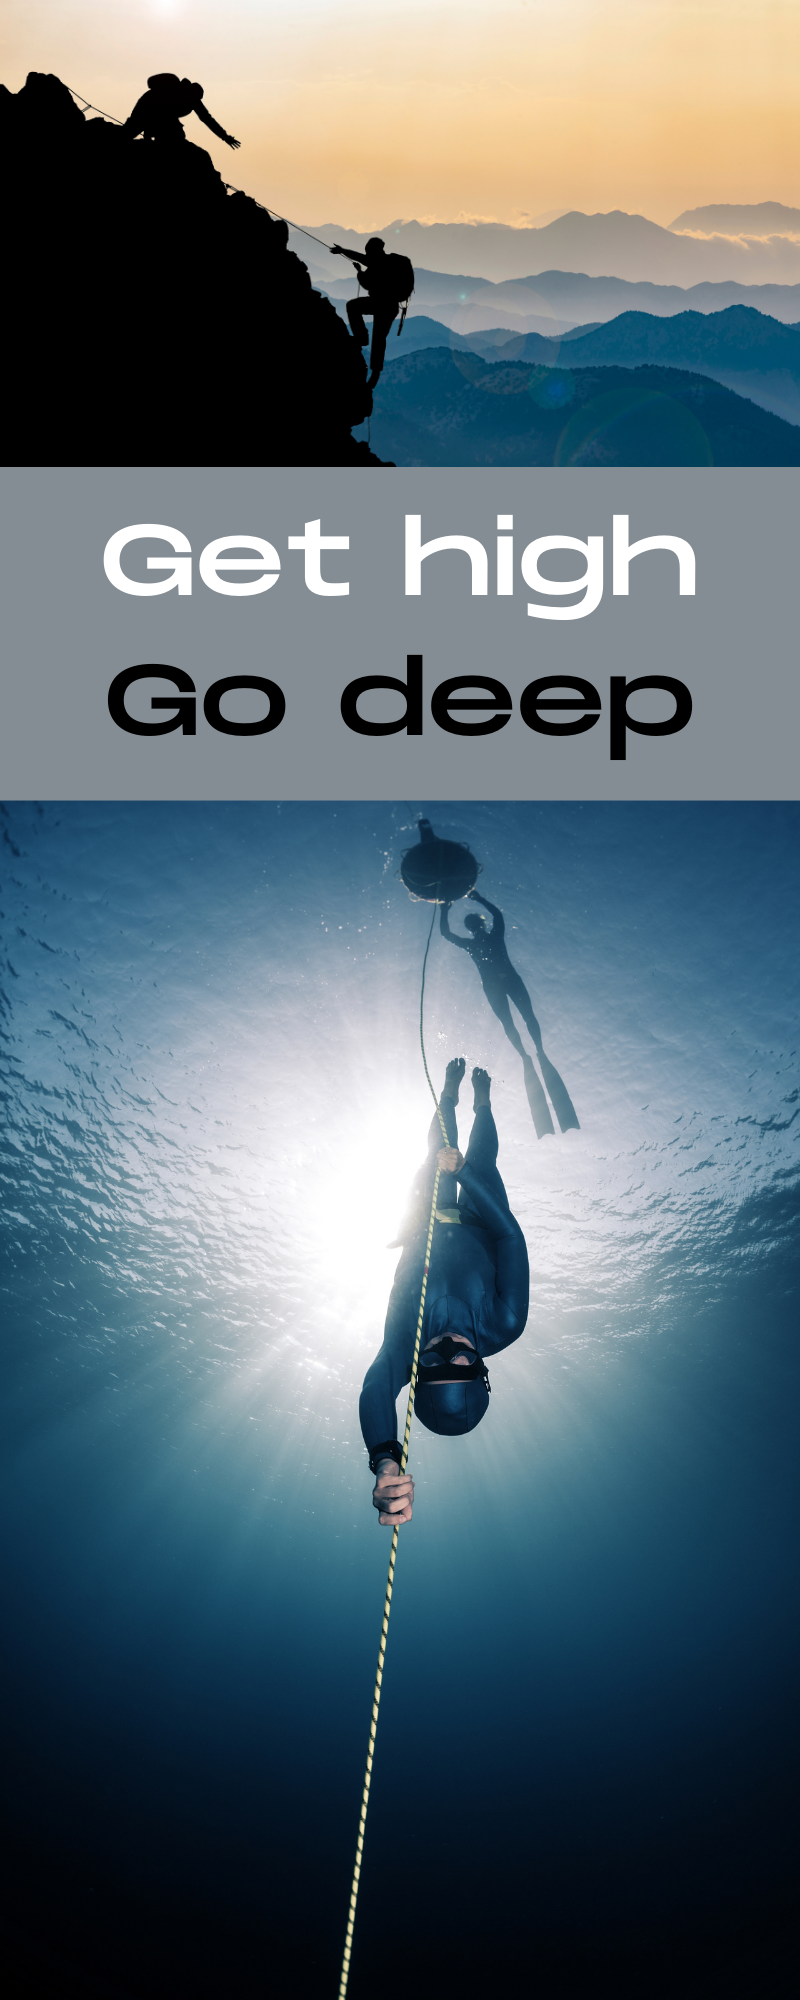 Mountain climber and freediver